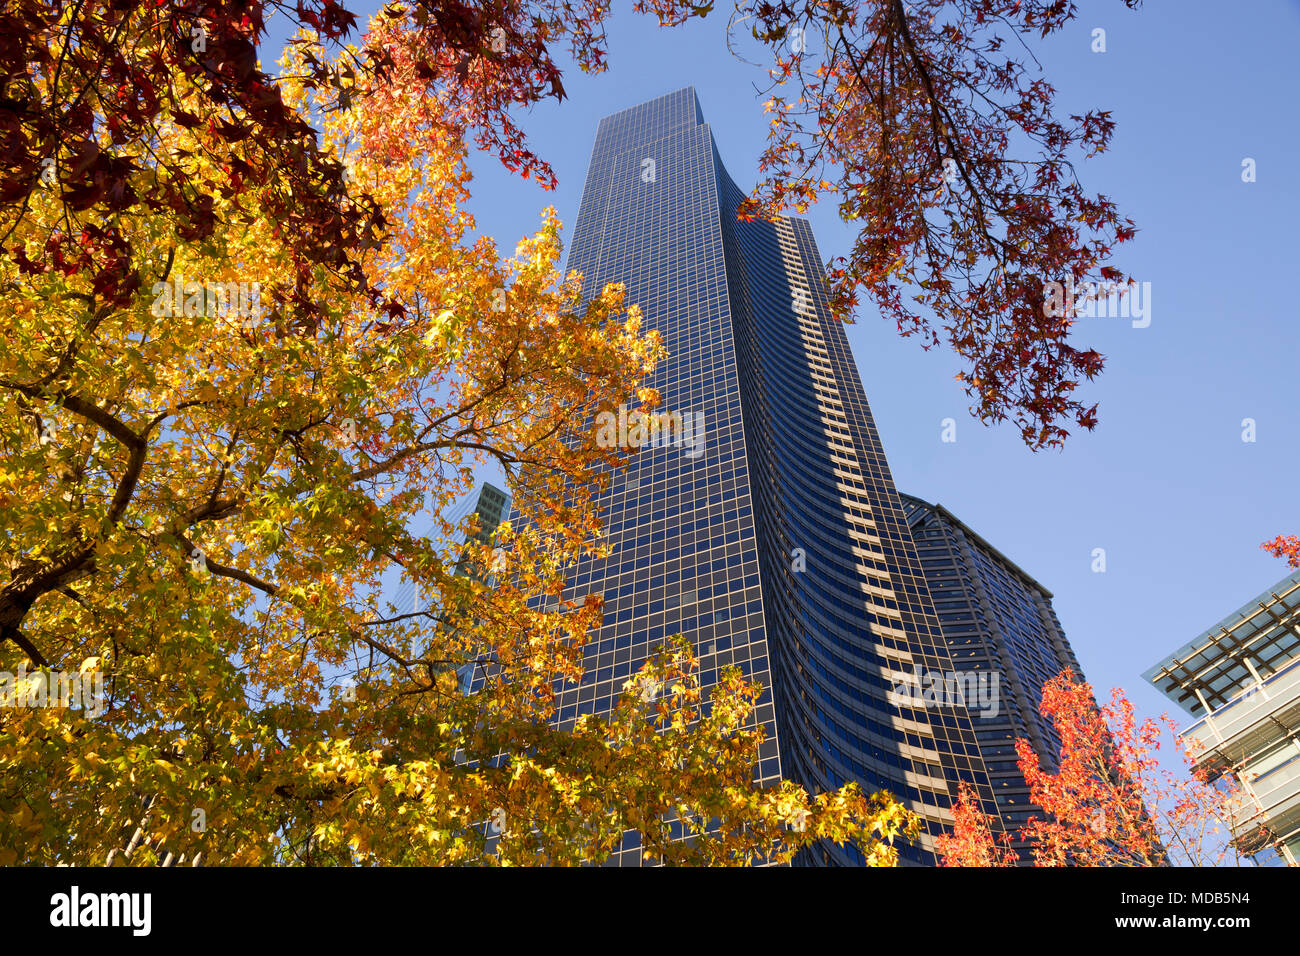 WA15286-00...WASHINGTON - Columbia Center, at 76 floors high, is the tallest building Seattle. - Stock Image